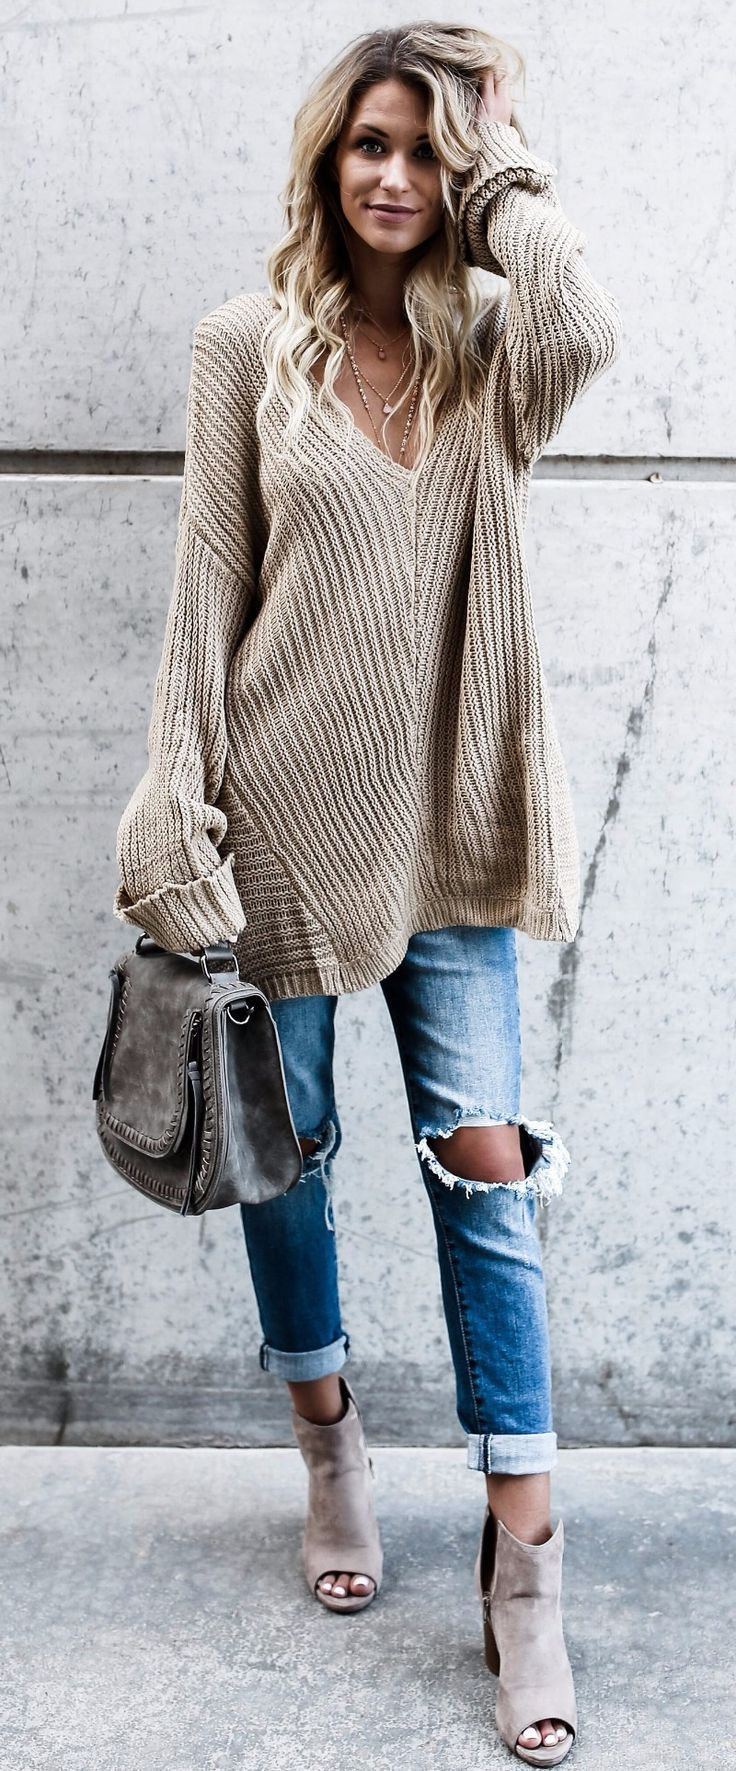 An oversized sweater that will make everyone asks where did you get it #omgoutfitideas #outfitoftheday #outfitinspiration